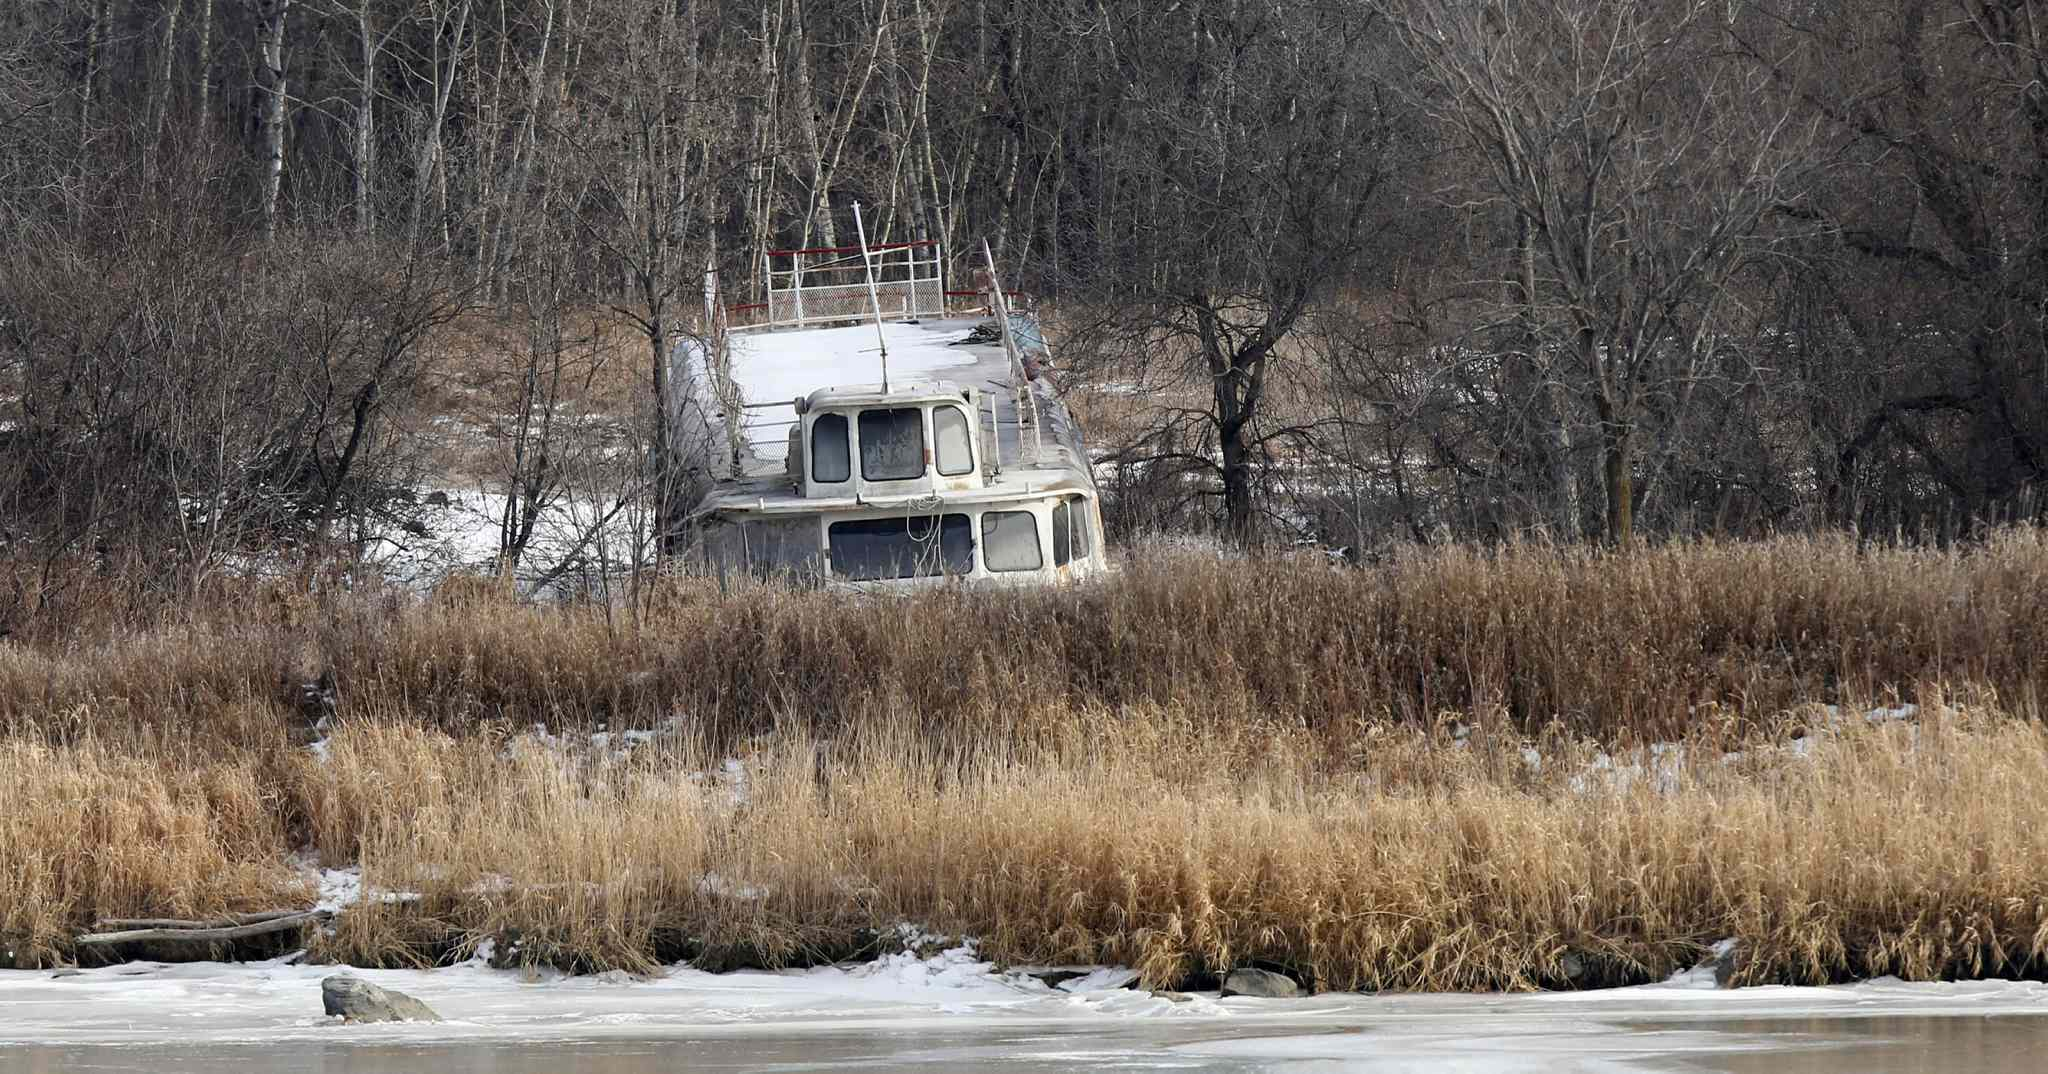 The MS Lady Winnipeg sits among the reeds near Selkirk, where it has been parked since 2002.